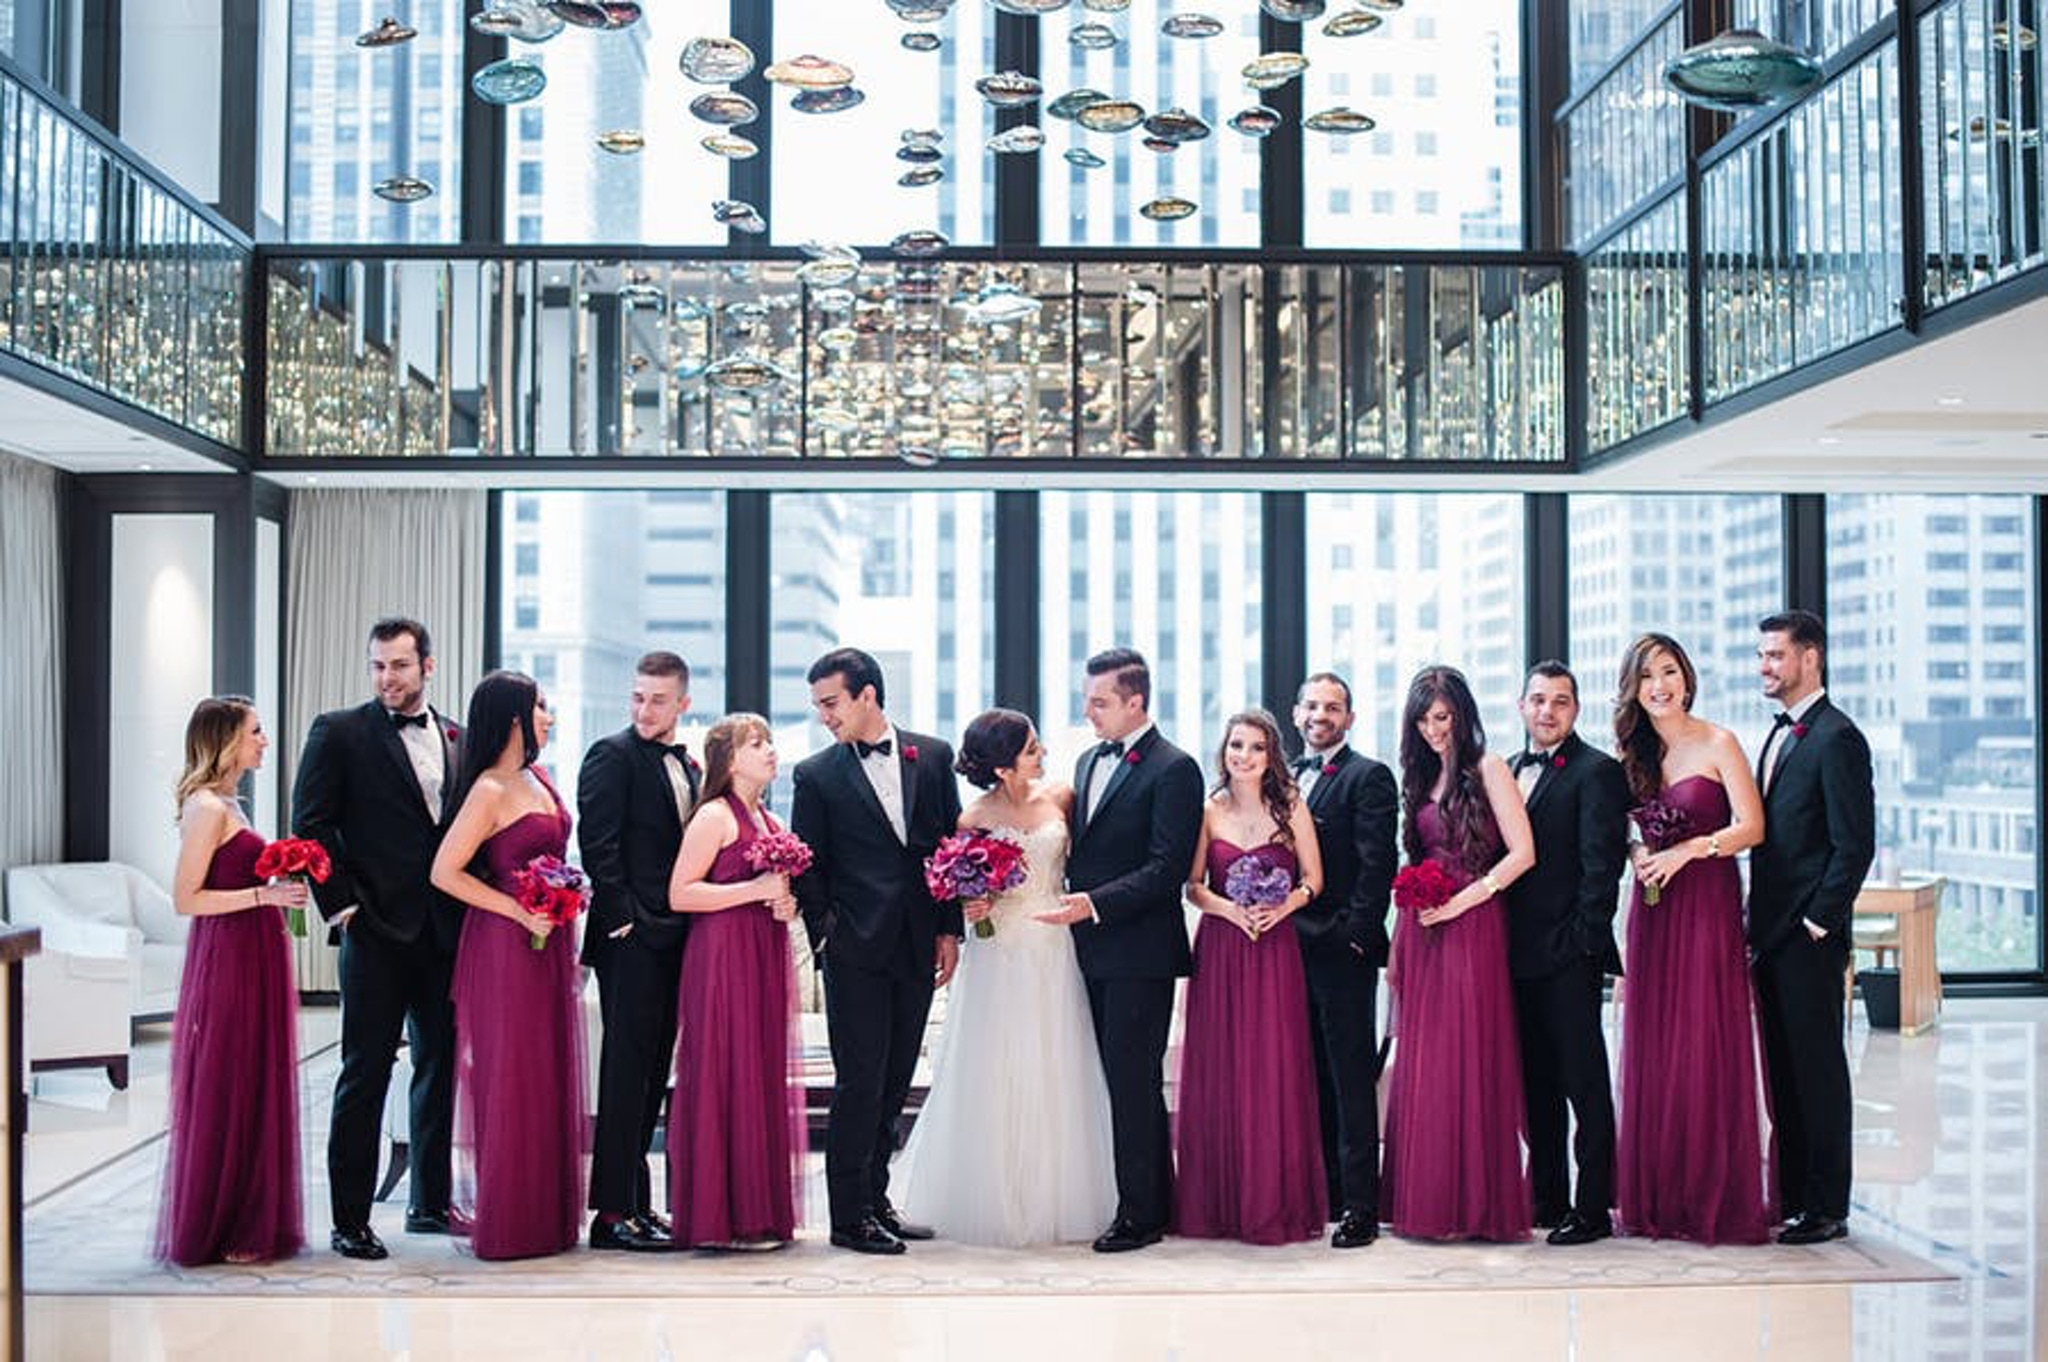 the bridal party is posed in the langham with massive windows behind them